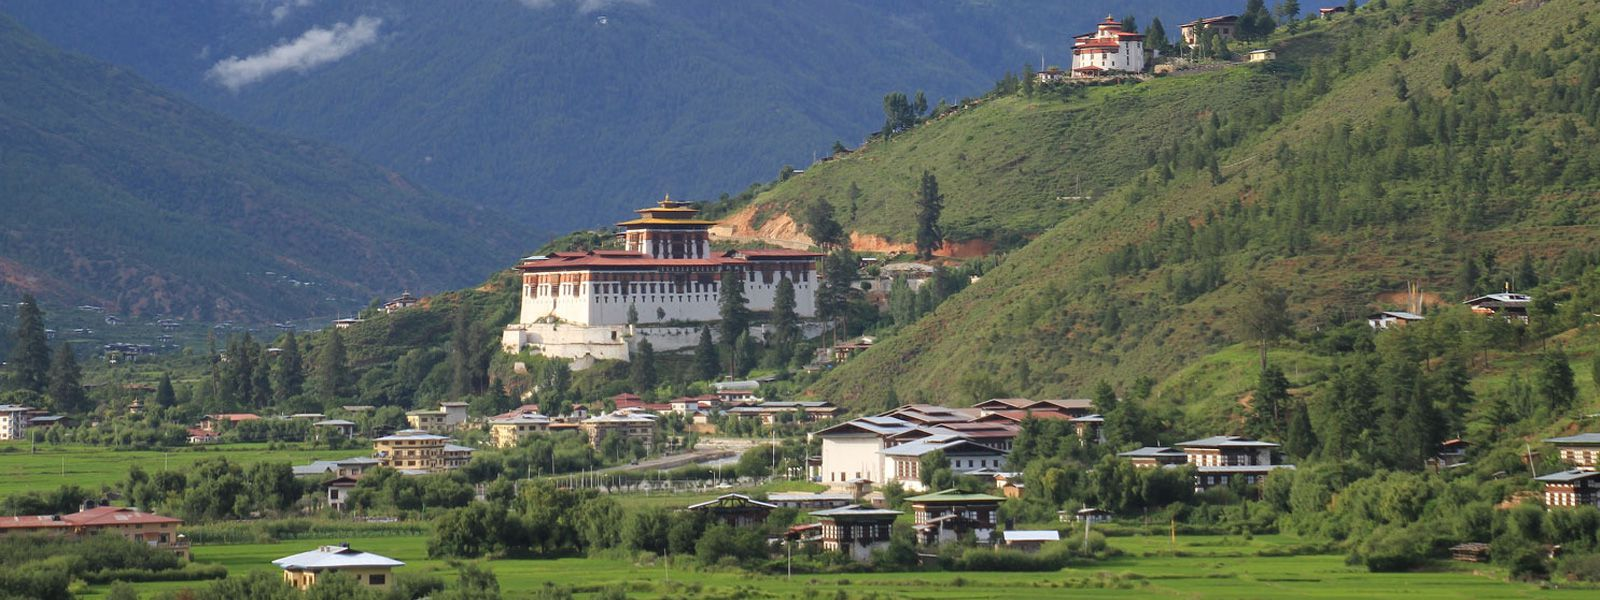 Monastery with  Green Scenery in  Bhutan!